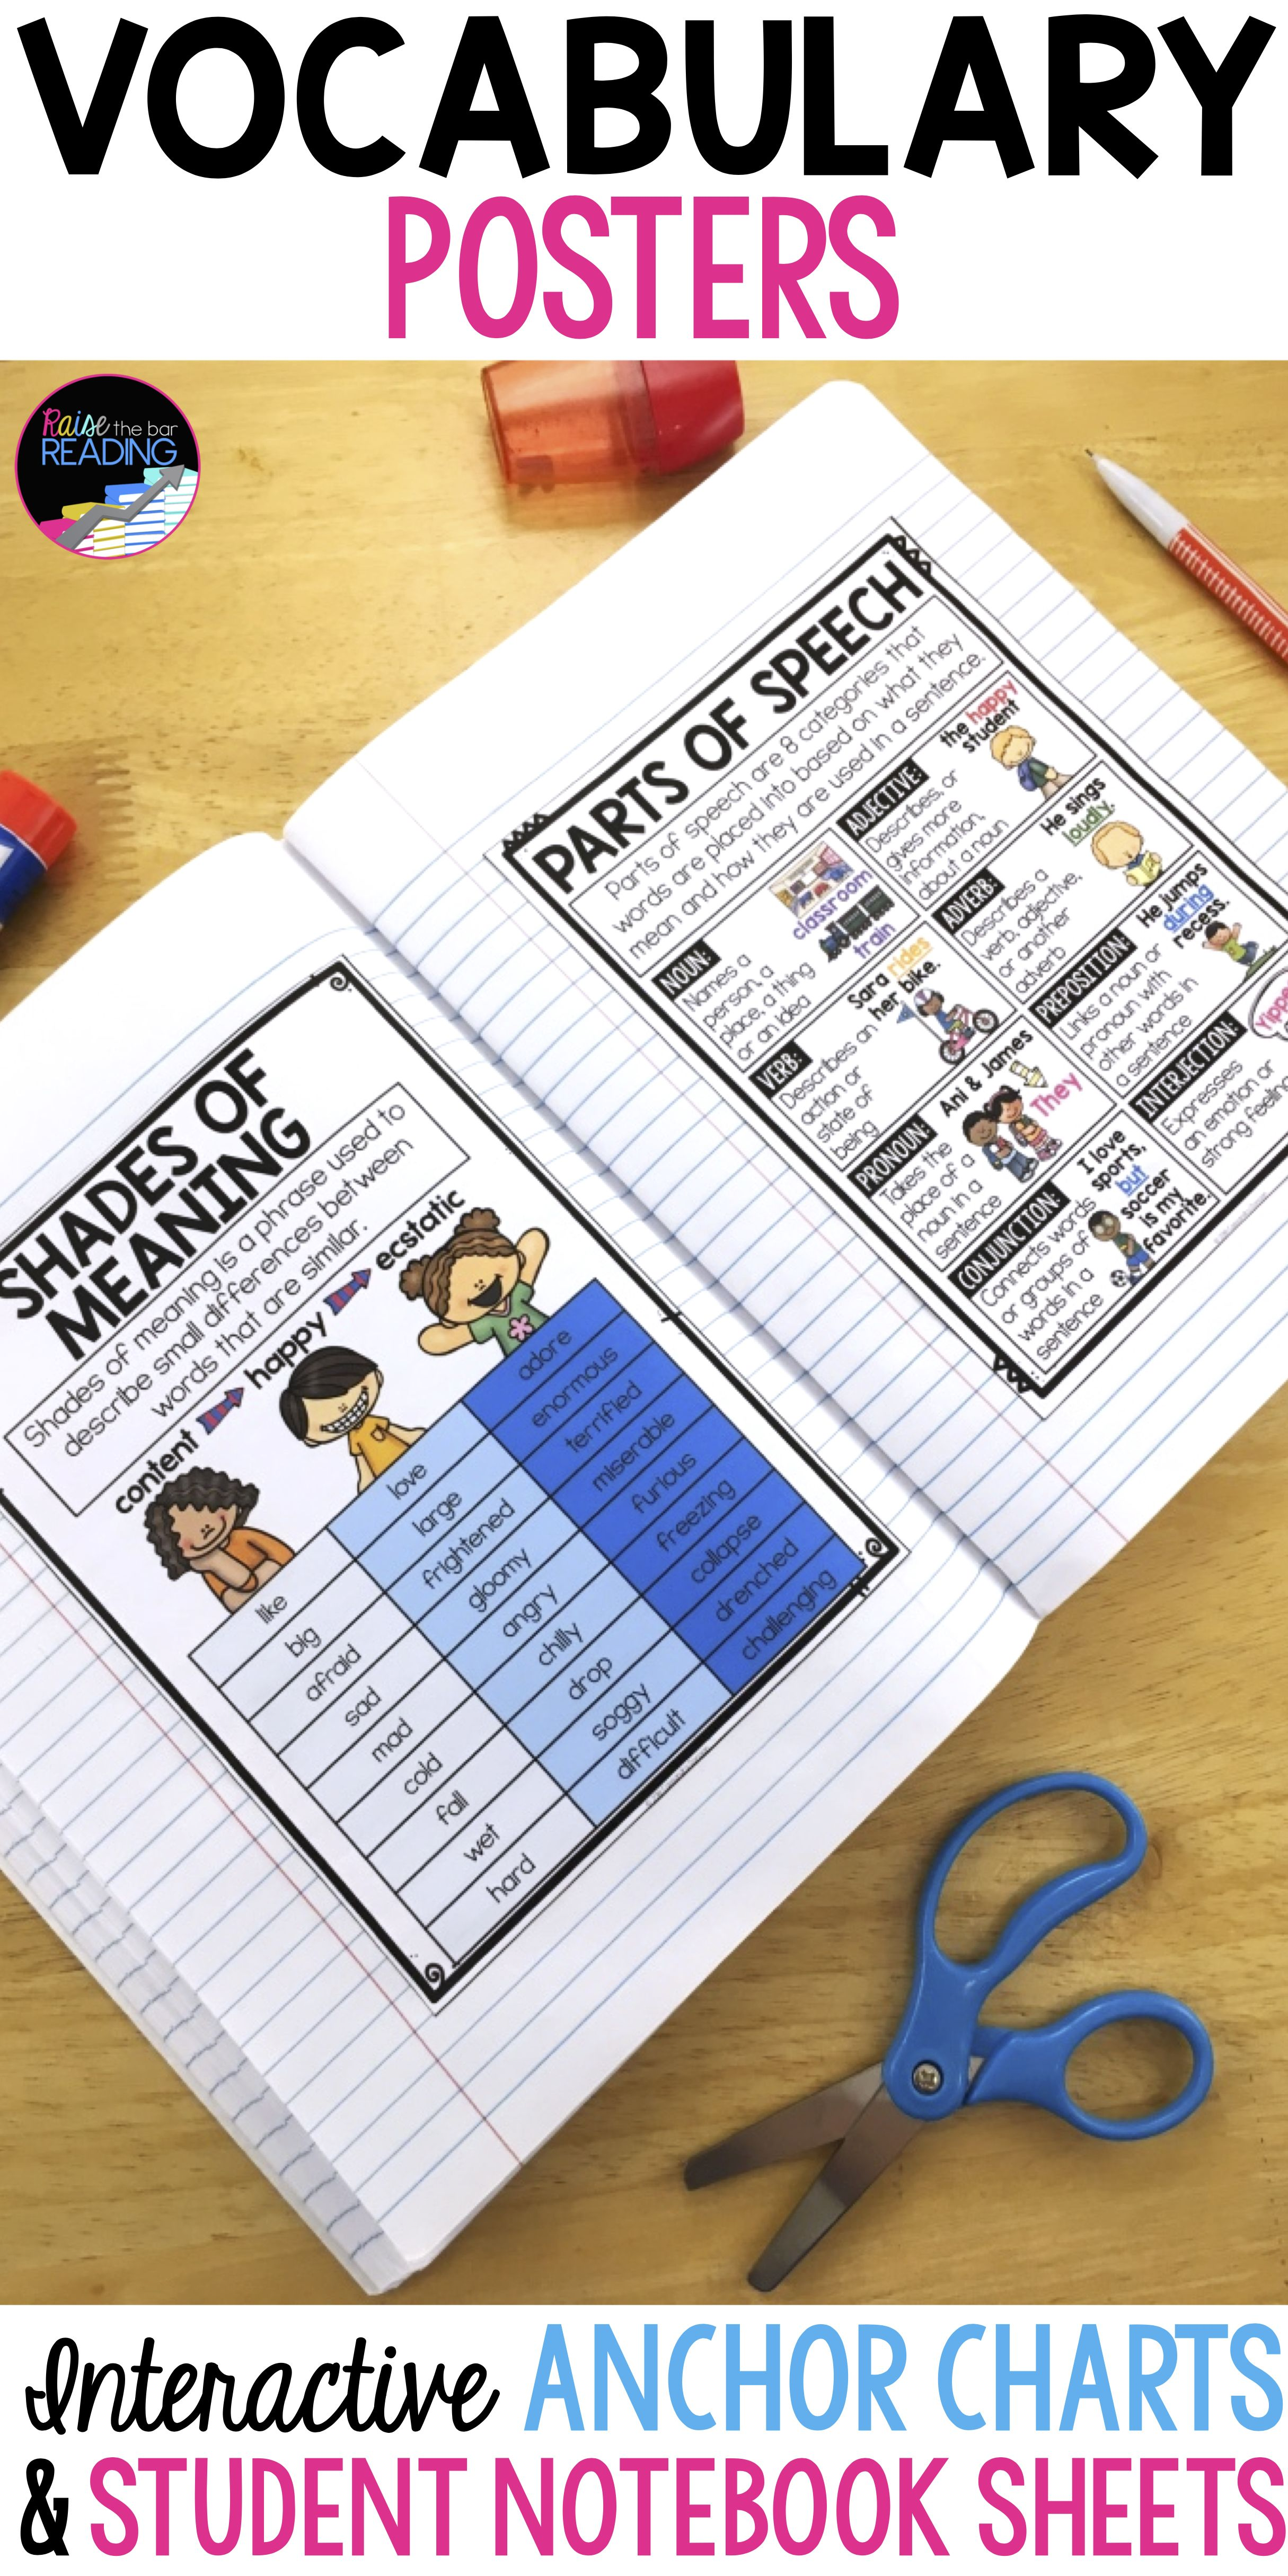 Vocabulary Posters Vocabulary Anchor Charts Amp Reader S Notebook Sheets